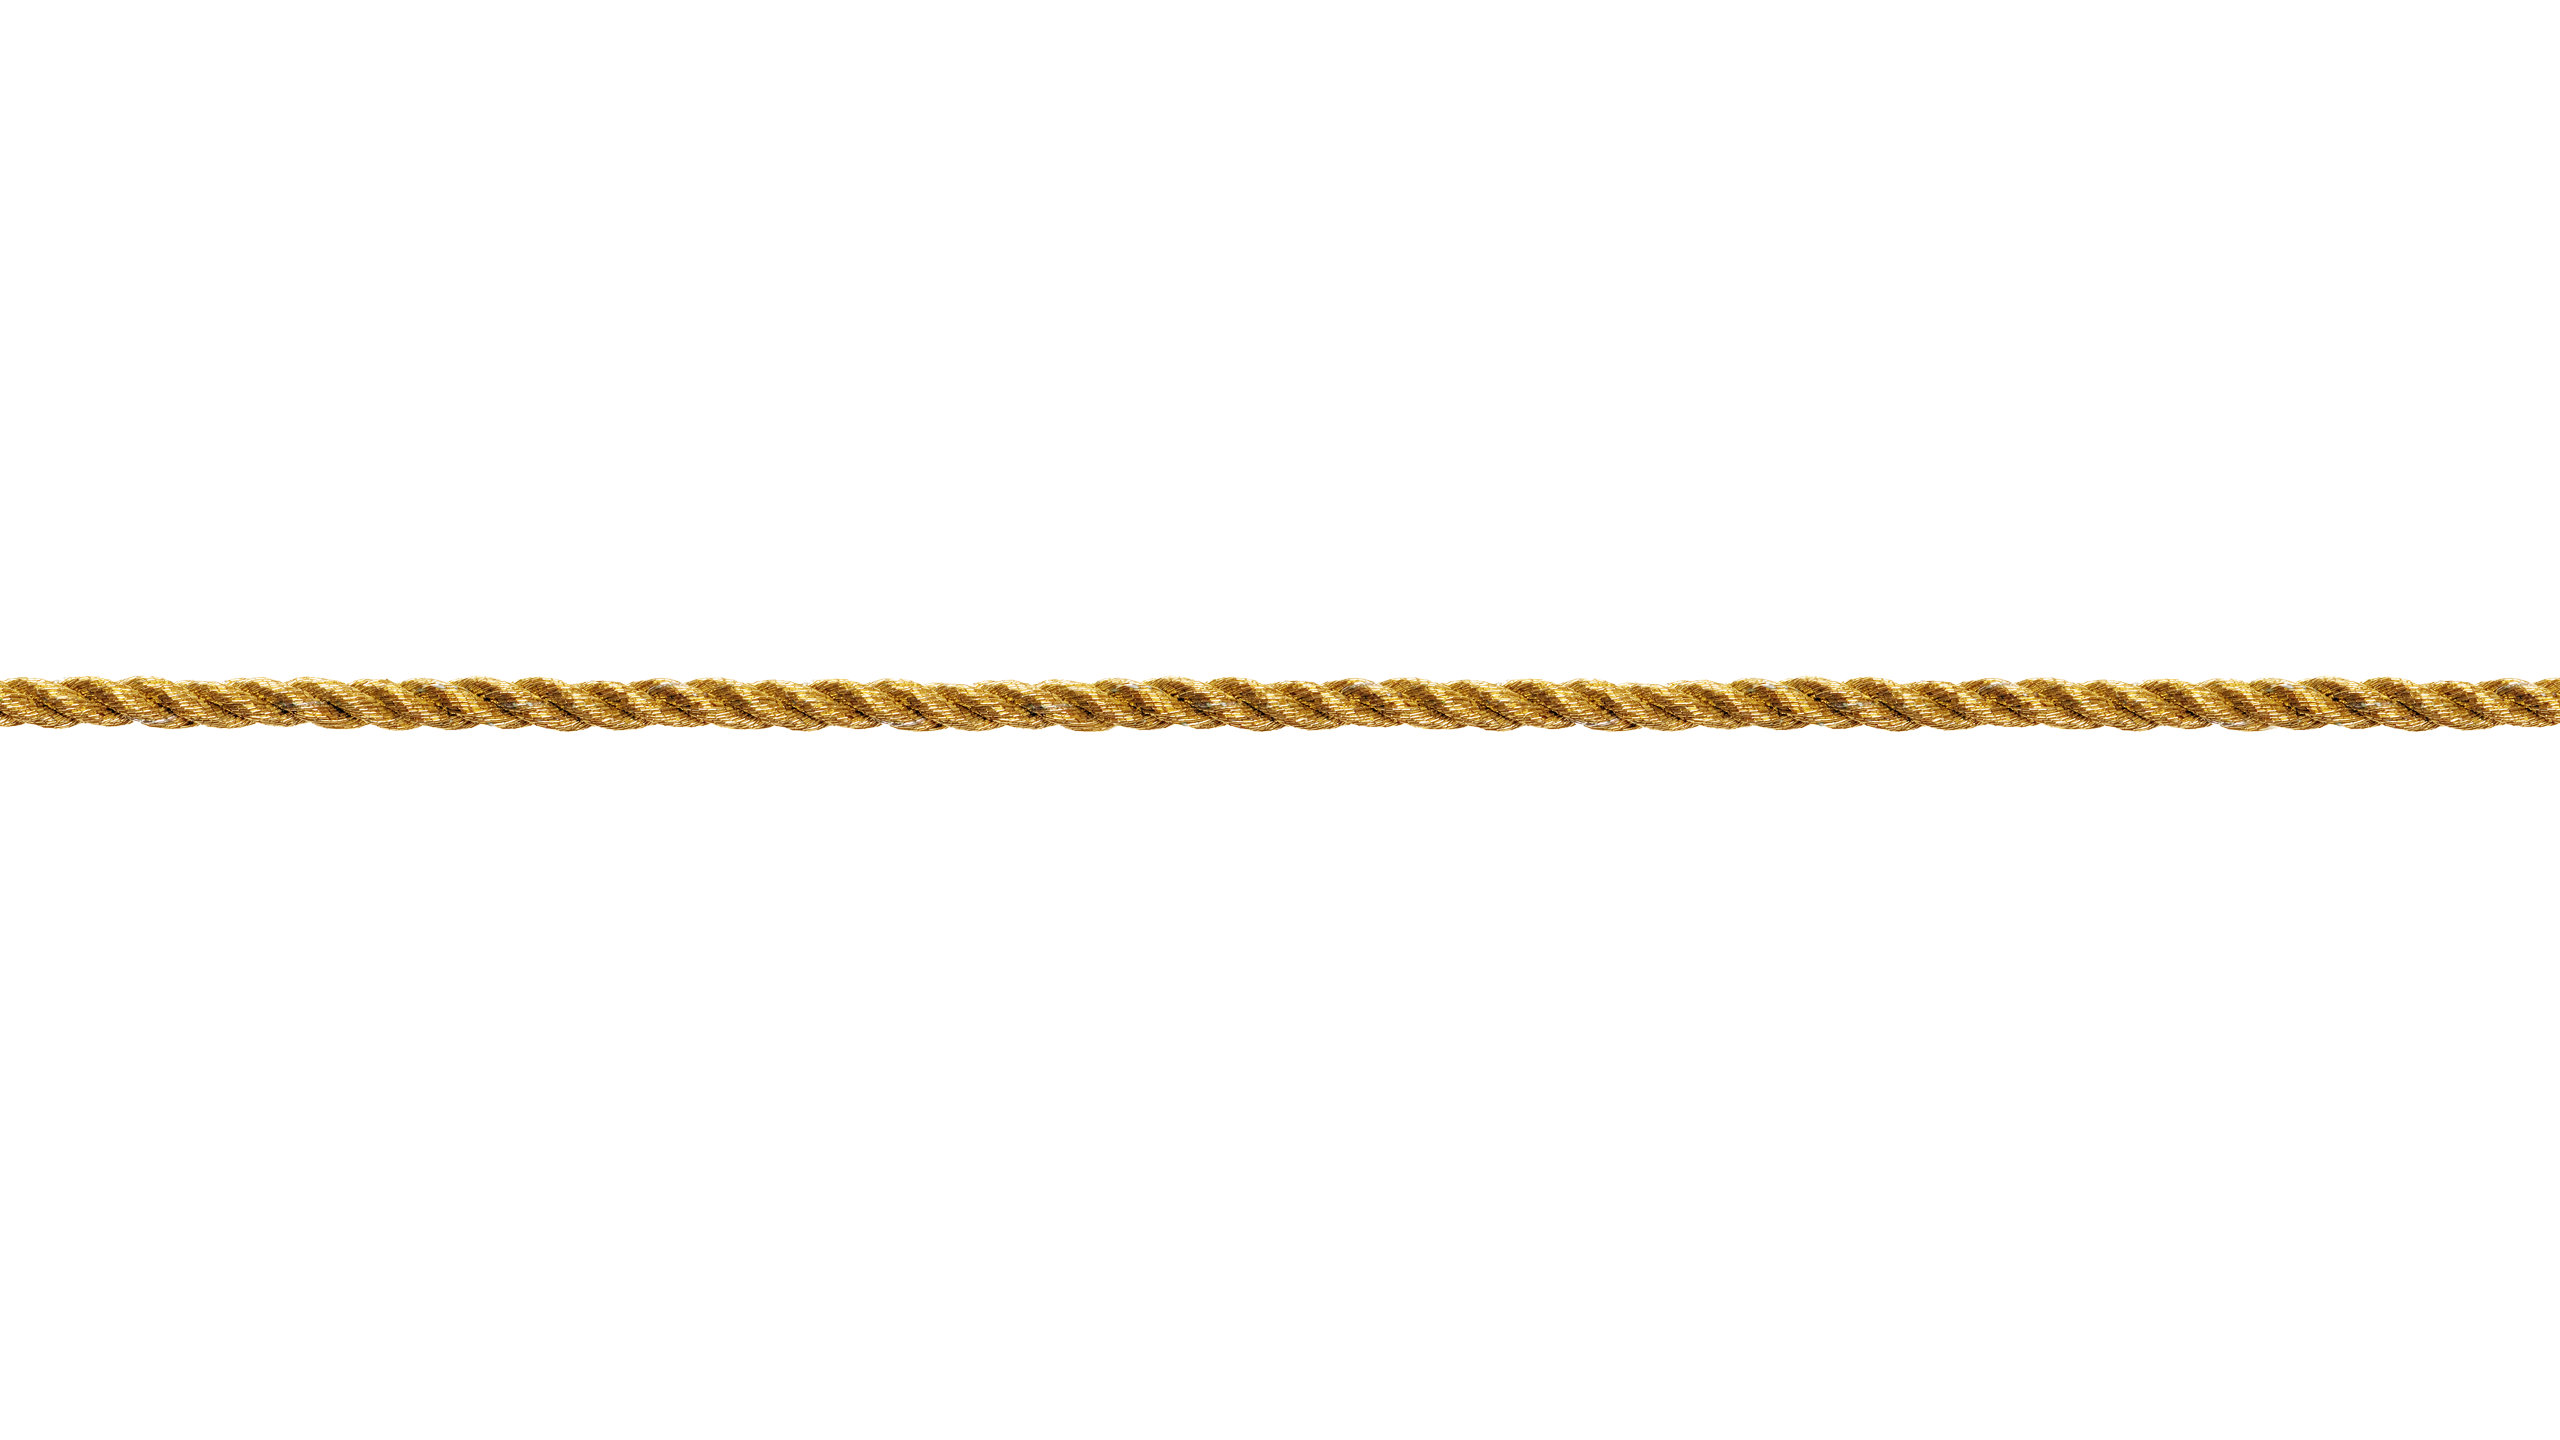 Rope PNG HD Pictures, Black Rope, Long Rope Clipart.